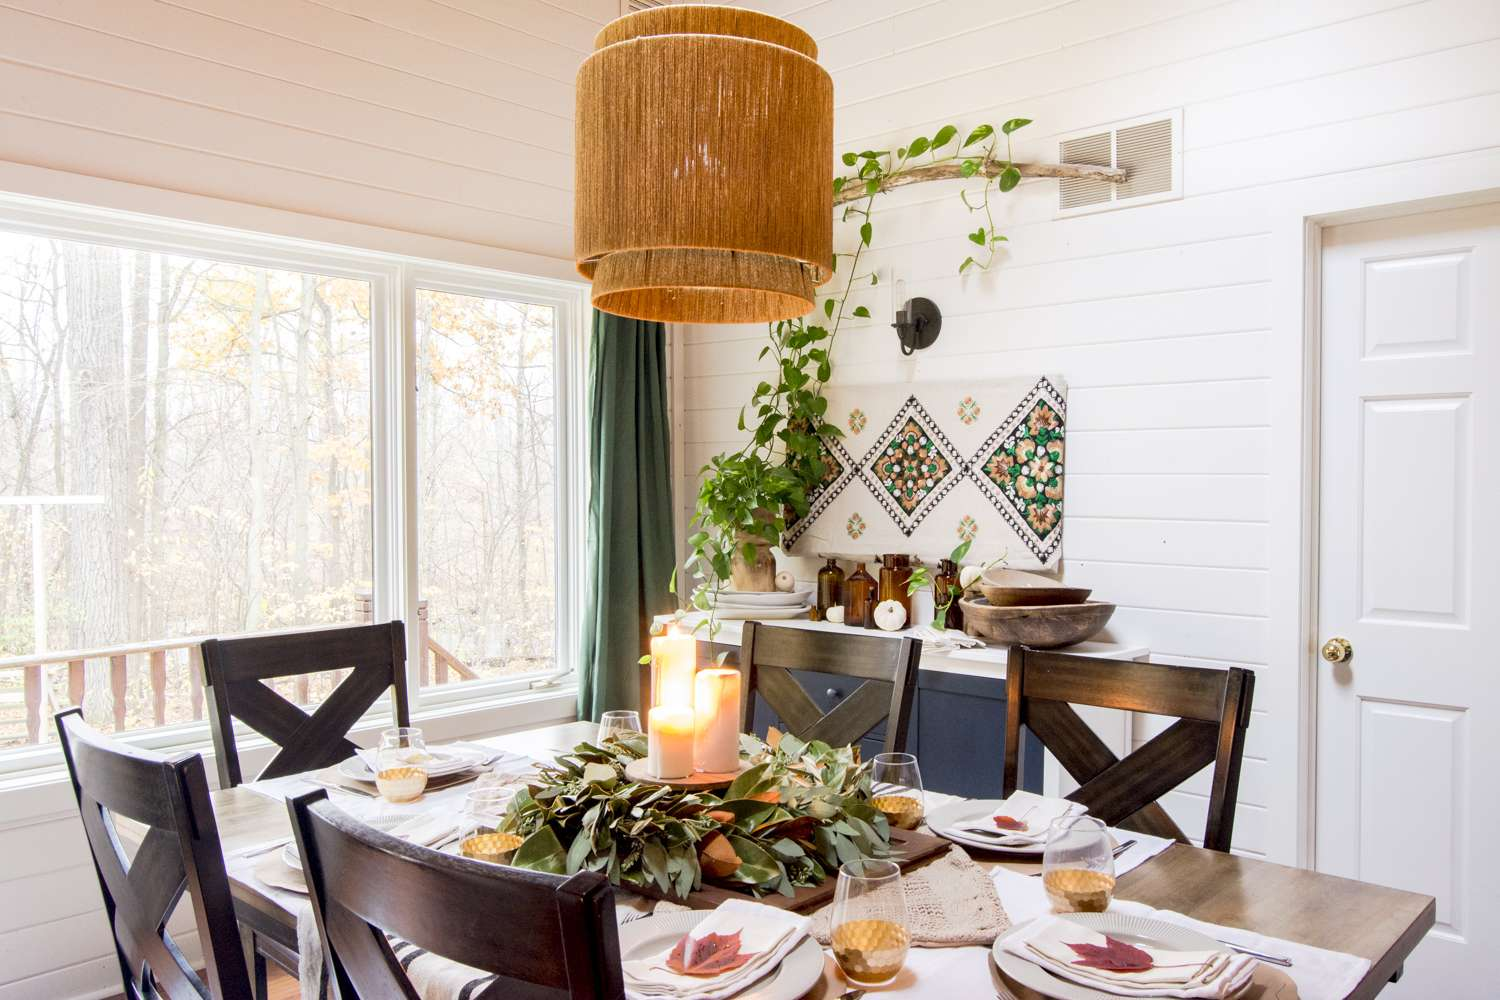 Thanksgiving table decor in a modern farmhouse dining room.